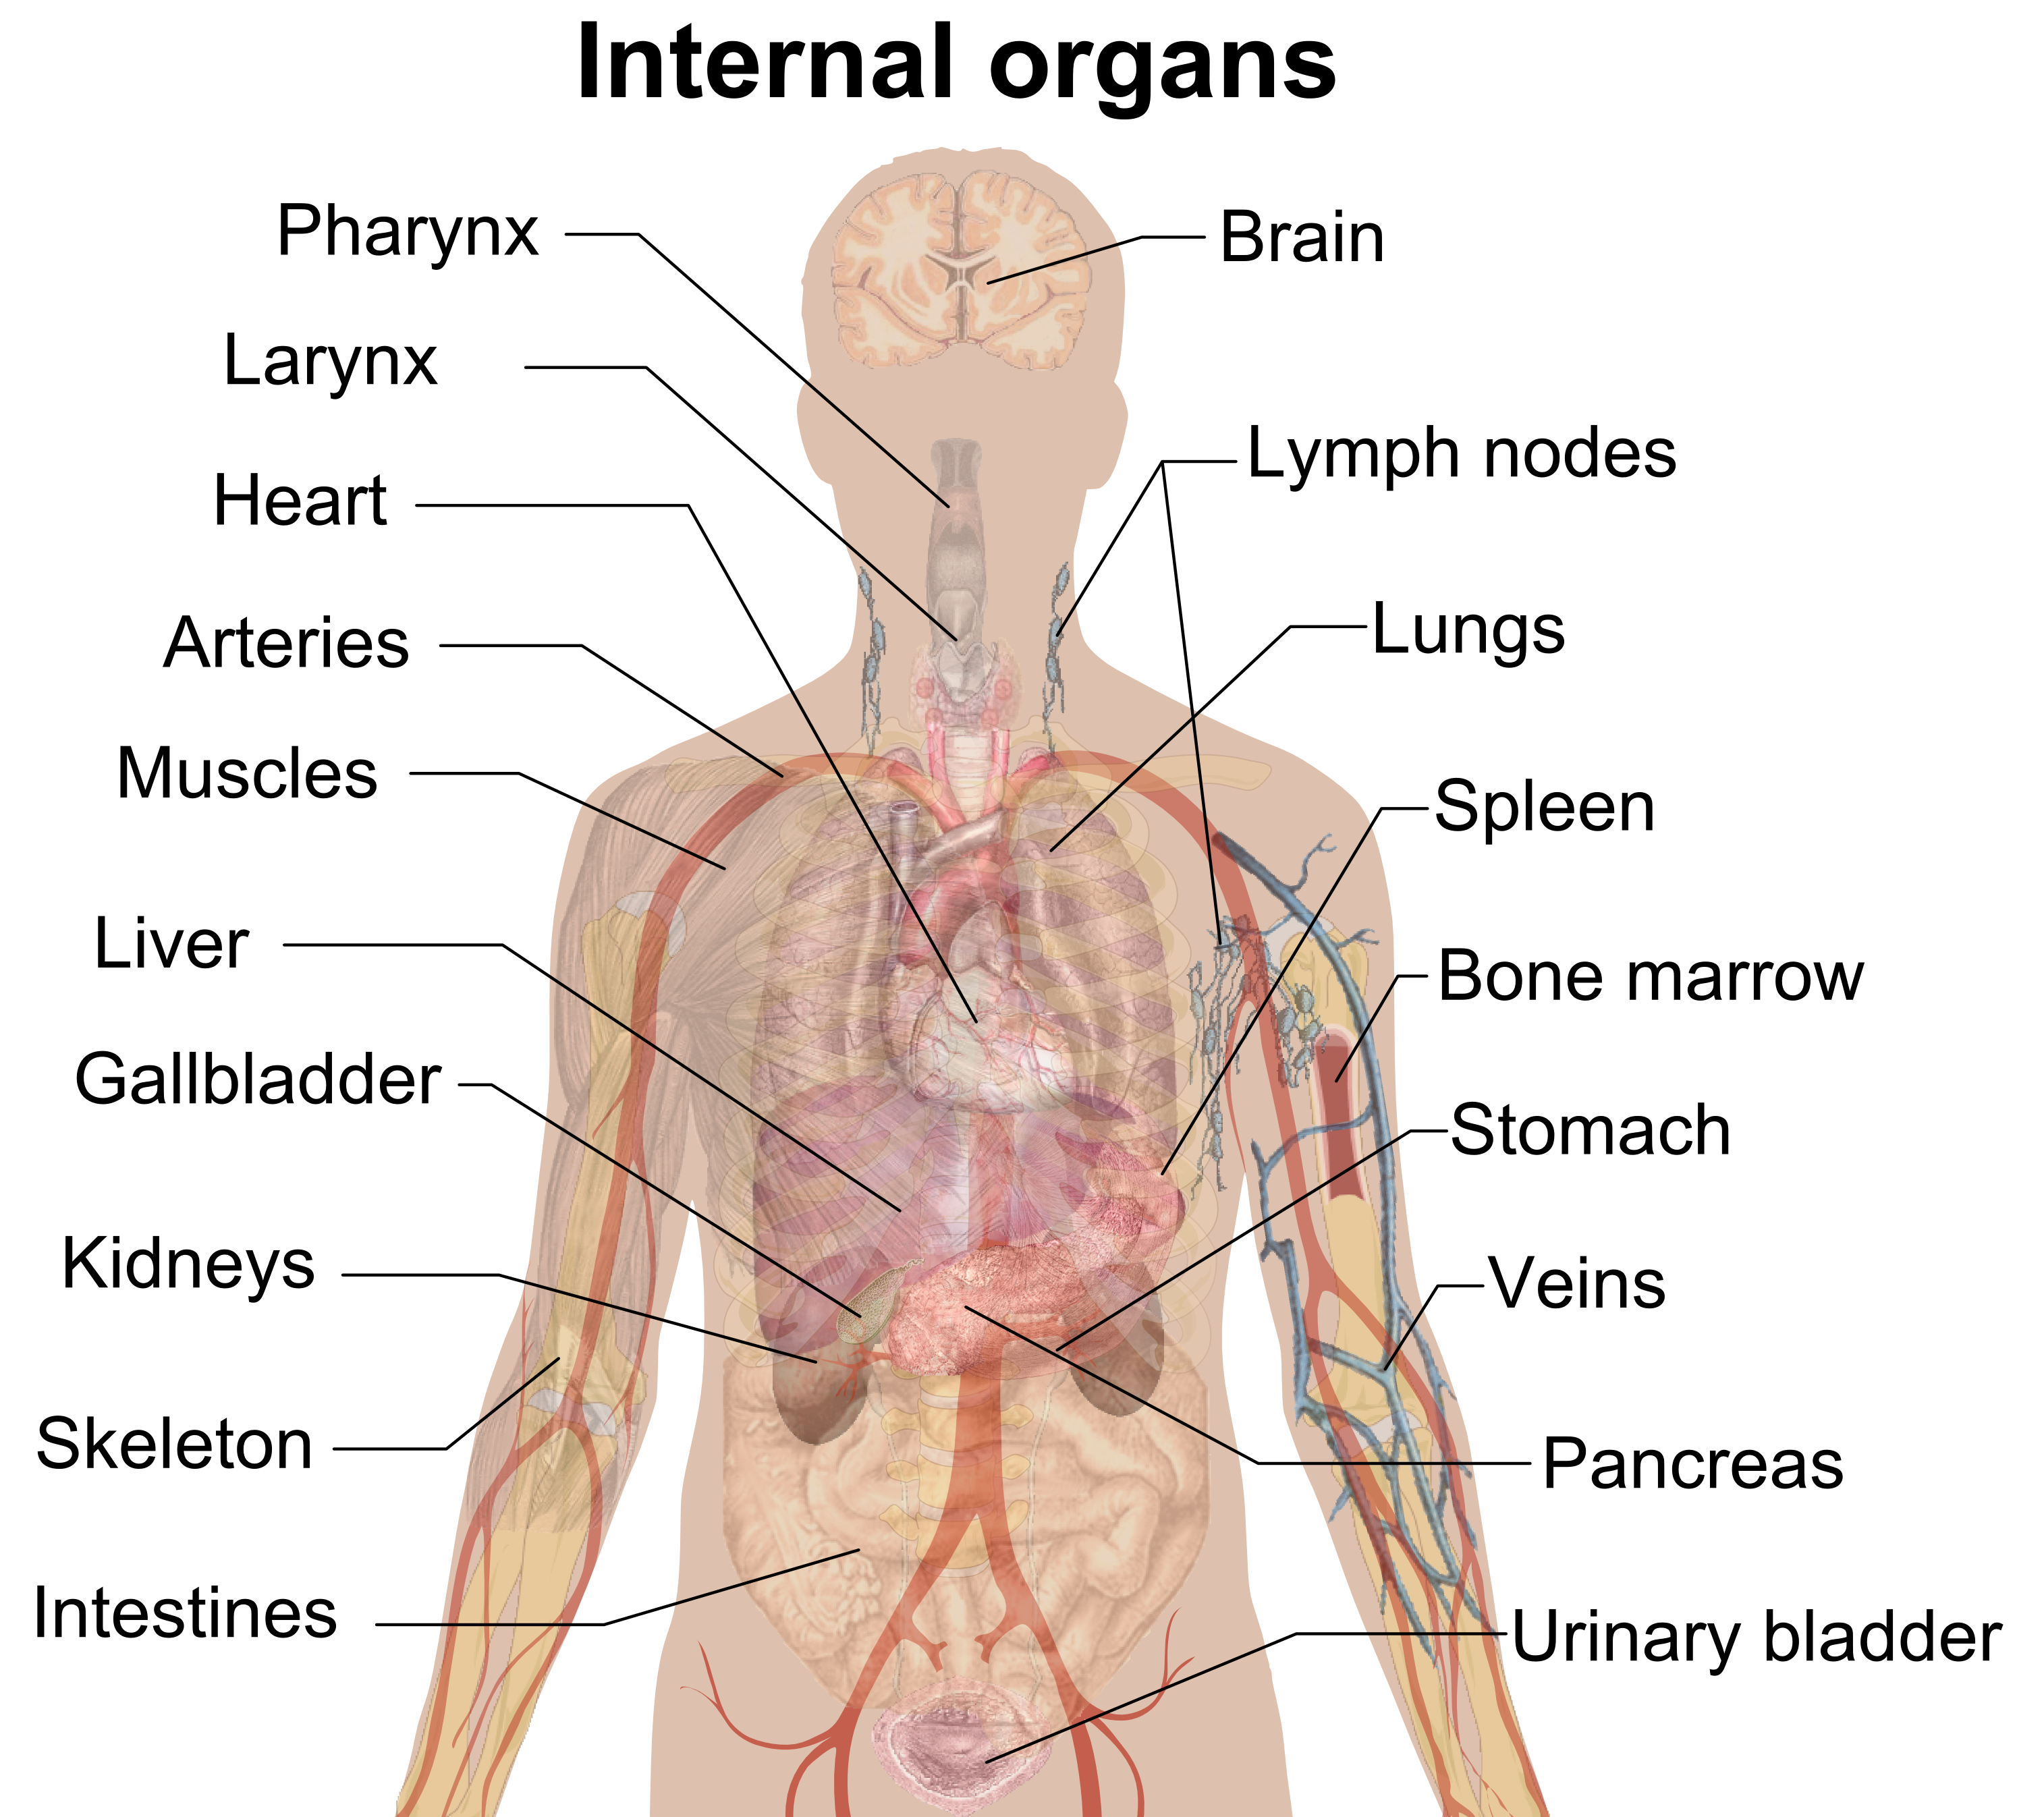 Neck clipart body part. File internal organs png